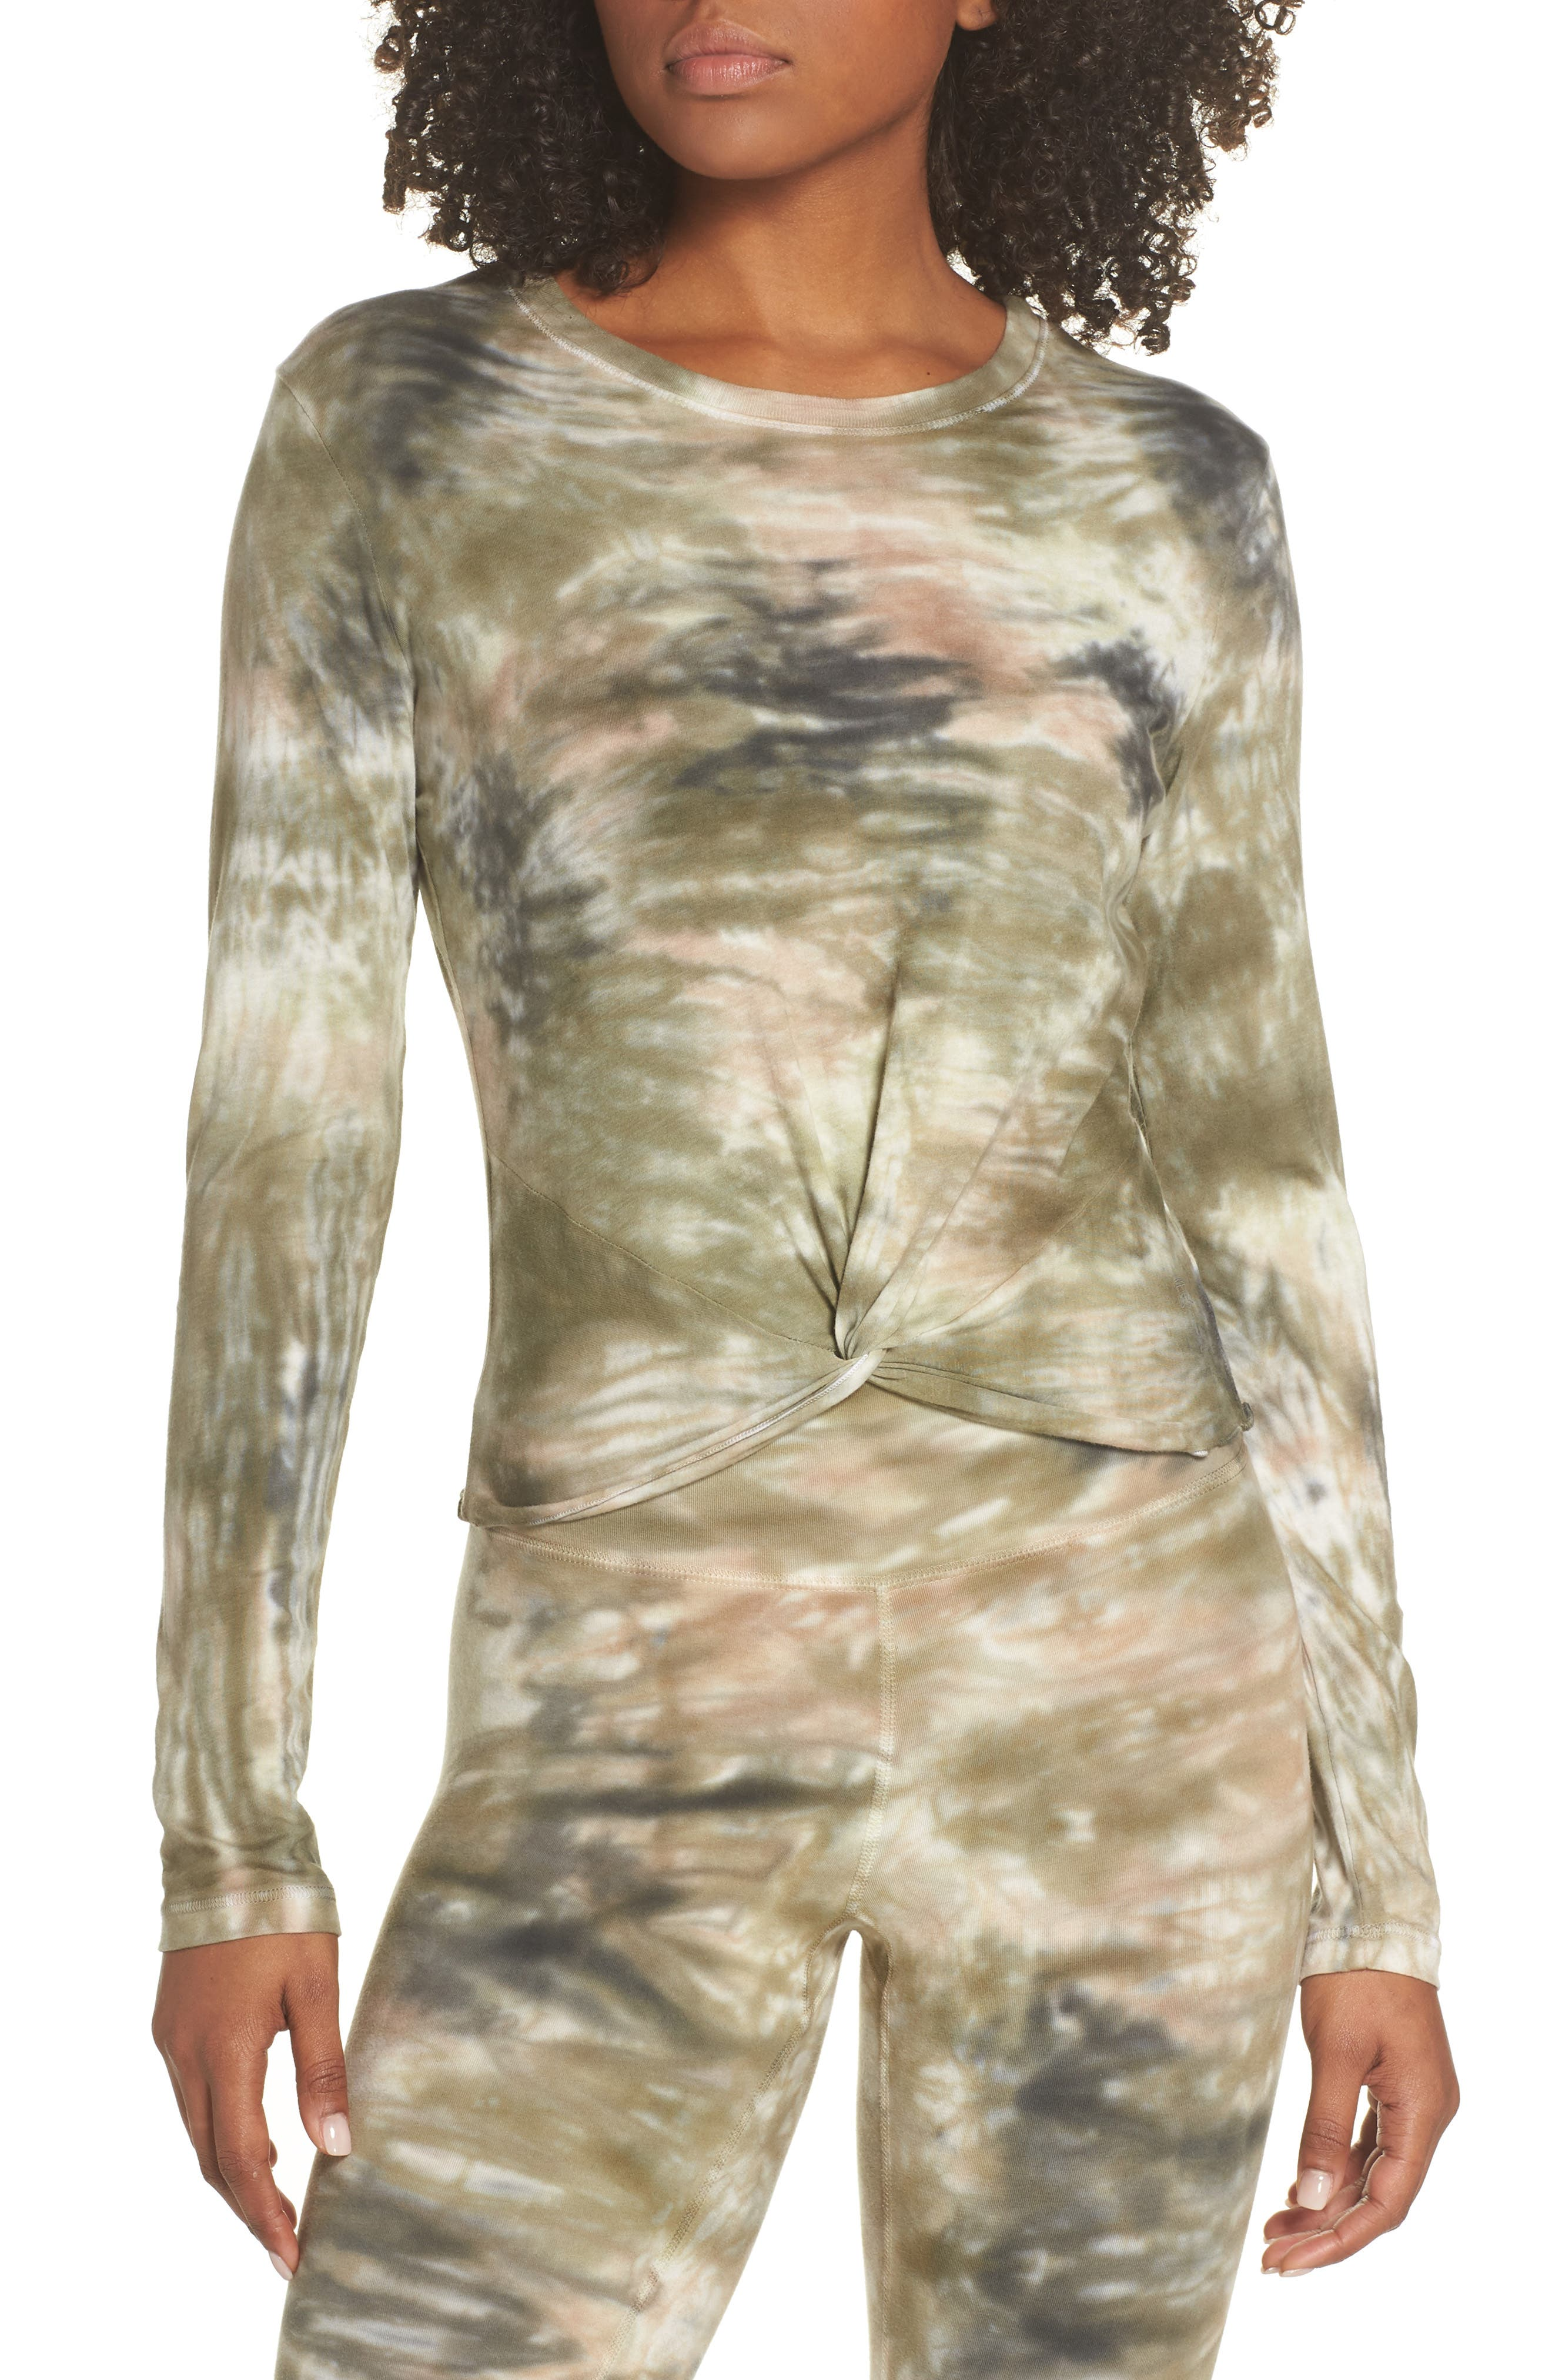 ELECTRIC & ROSE Shell Knot Shirt in Camo Wash Army